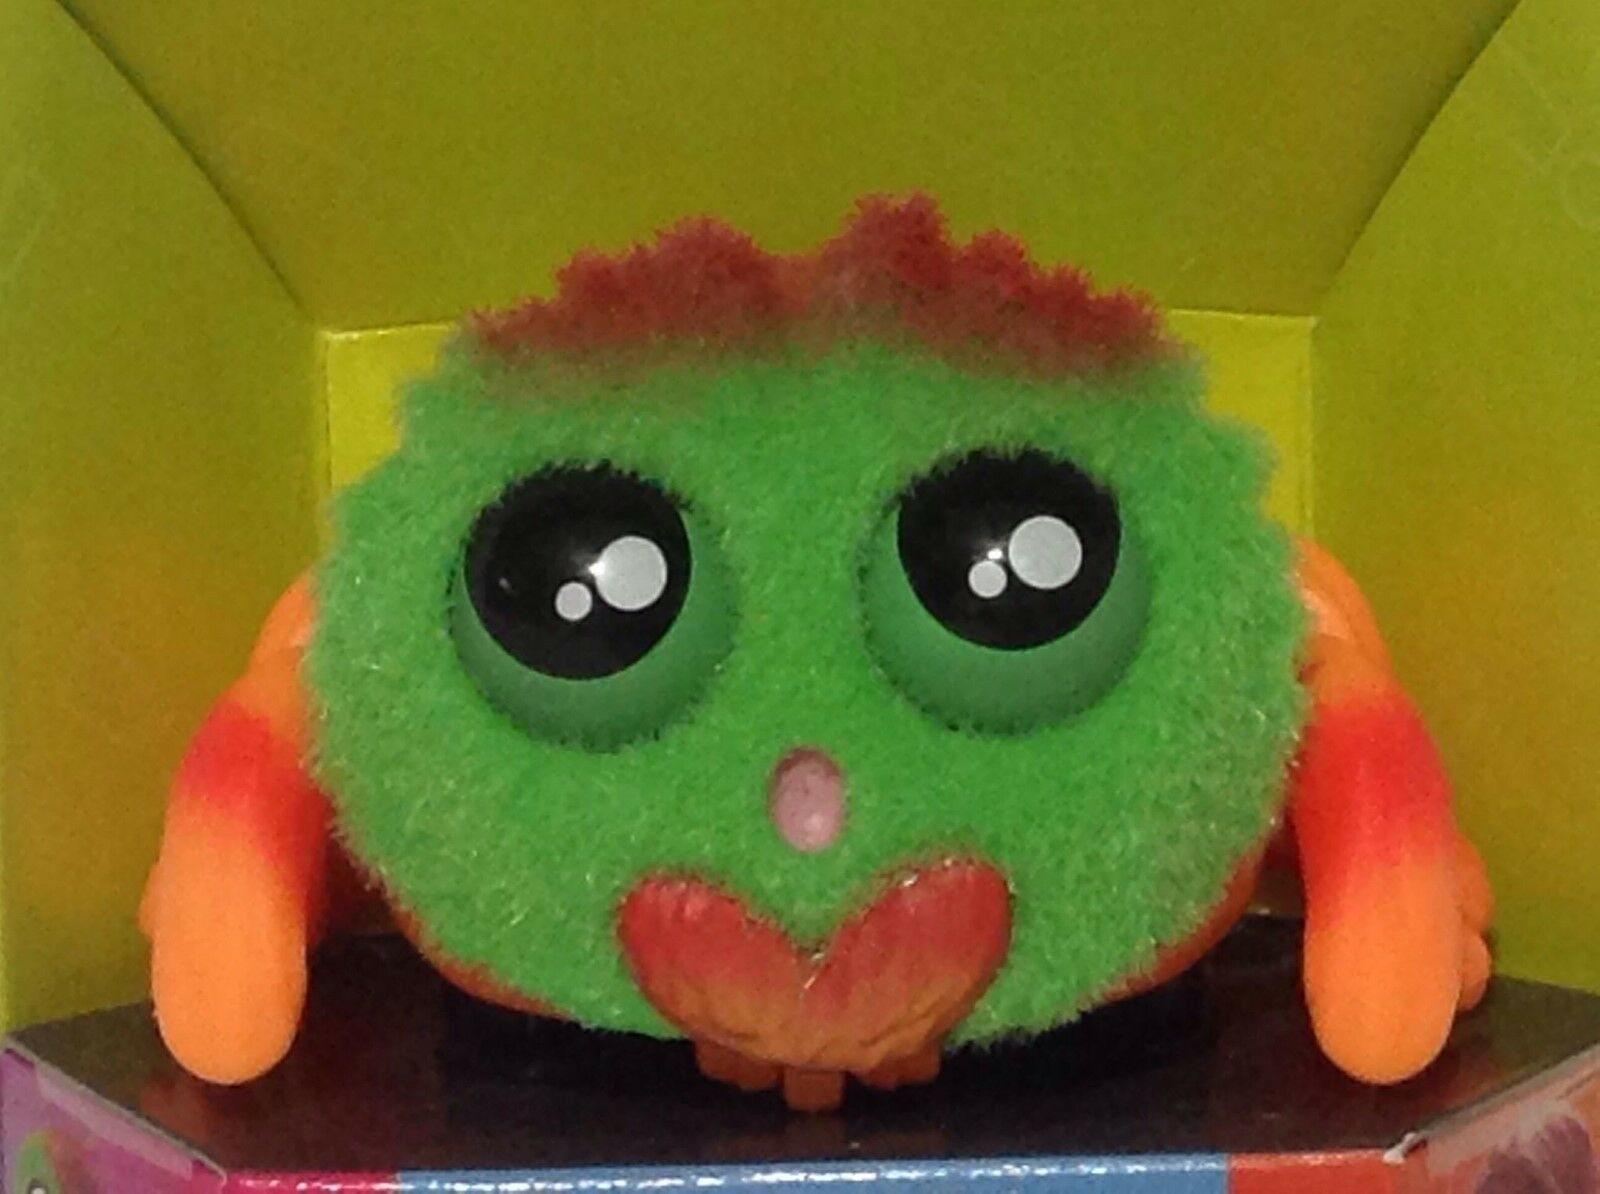 IN HAND Yellies Interactive Spiders Voice Activated Pet NEW HOT TOY Klutzers